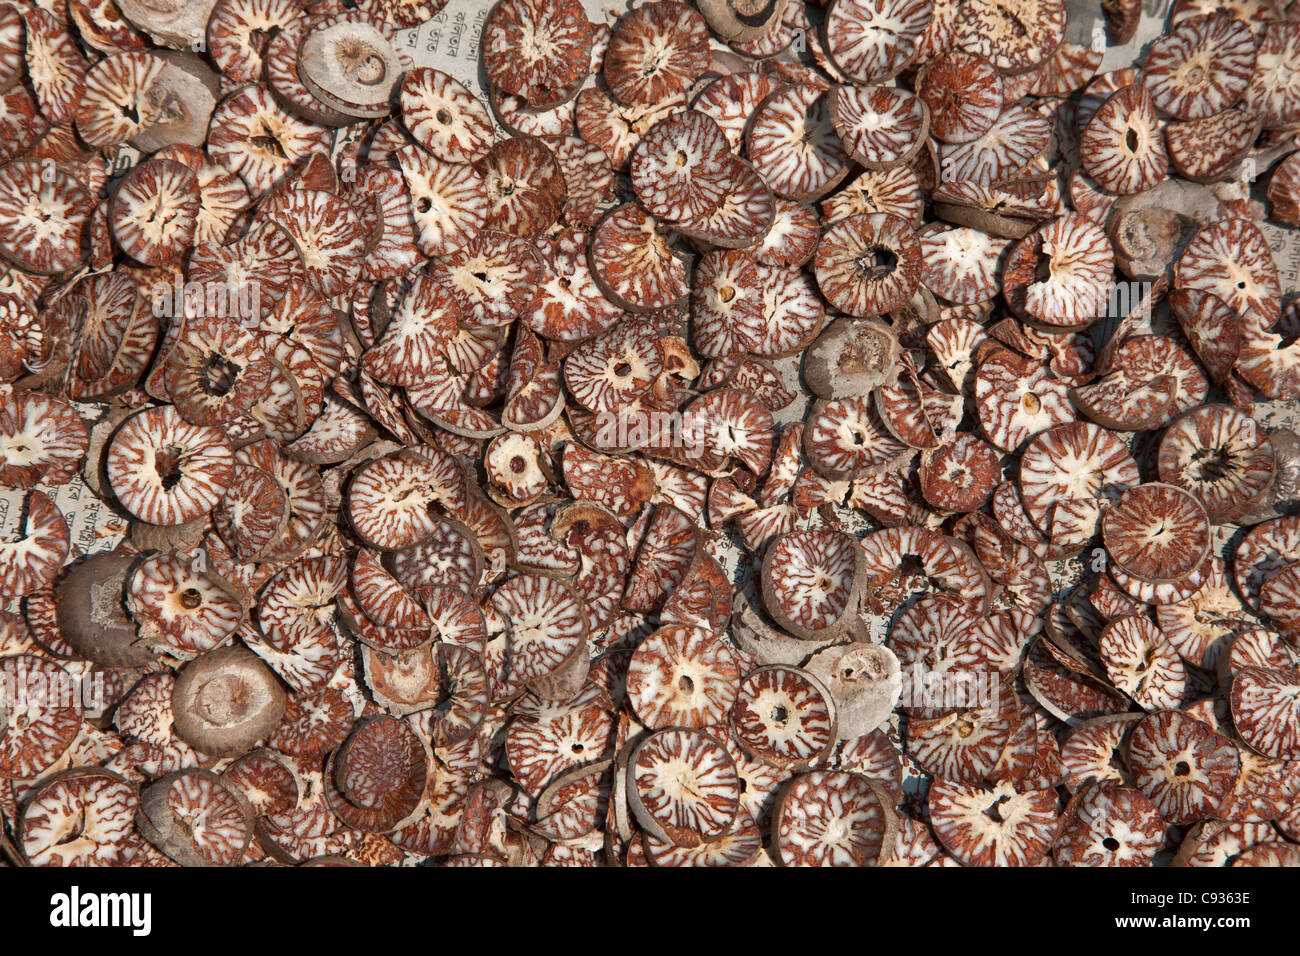 Slices of betel nut from the Areca palm drying in the sun. - Stock Image